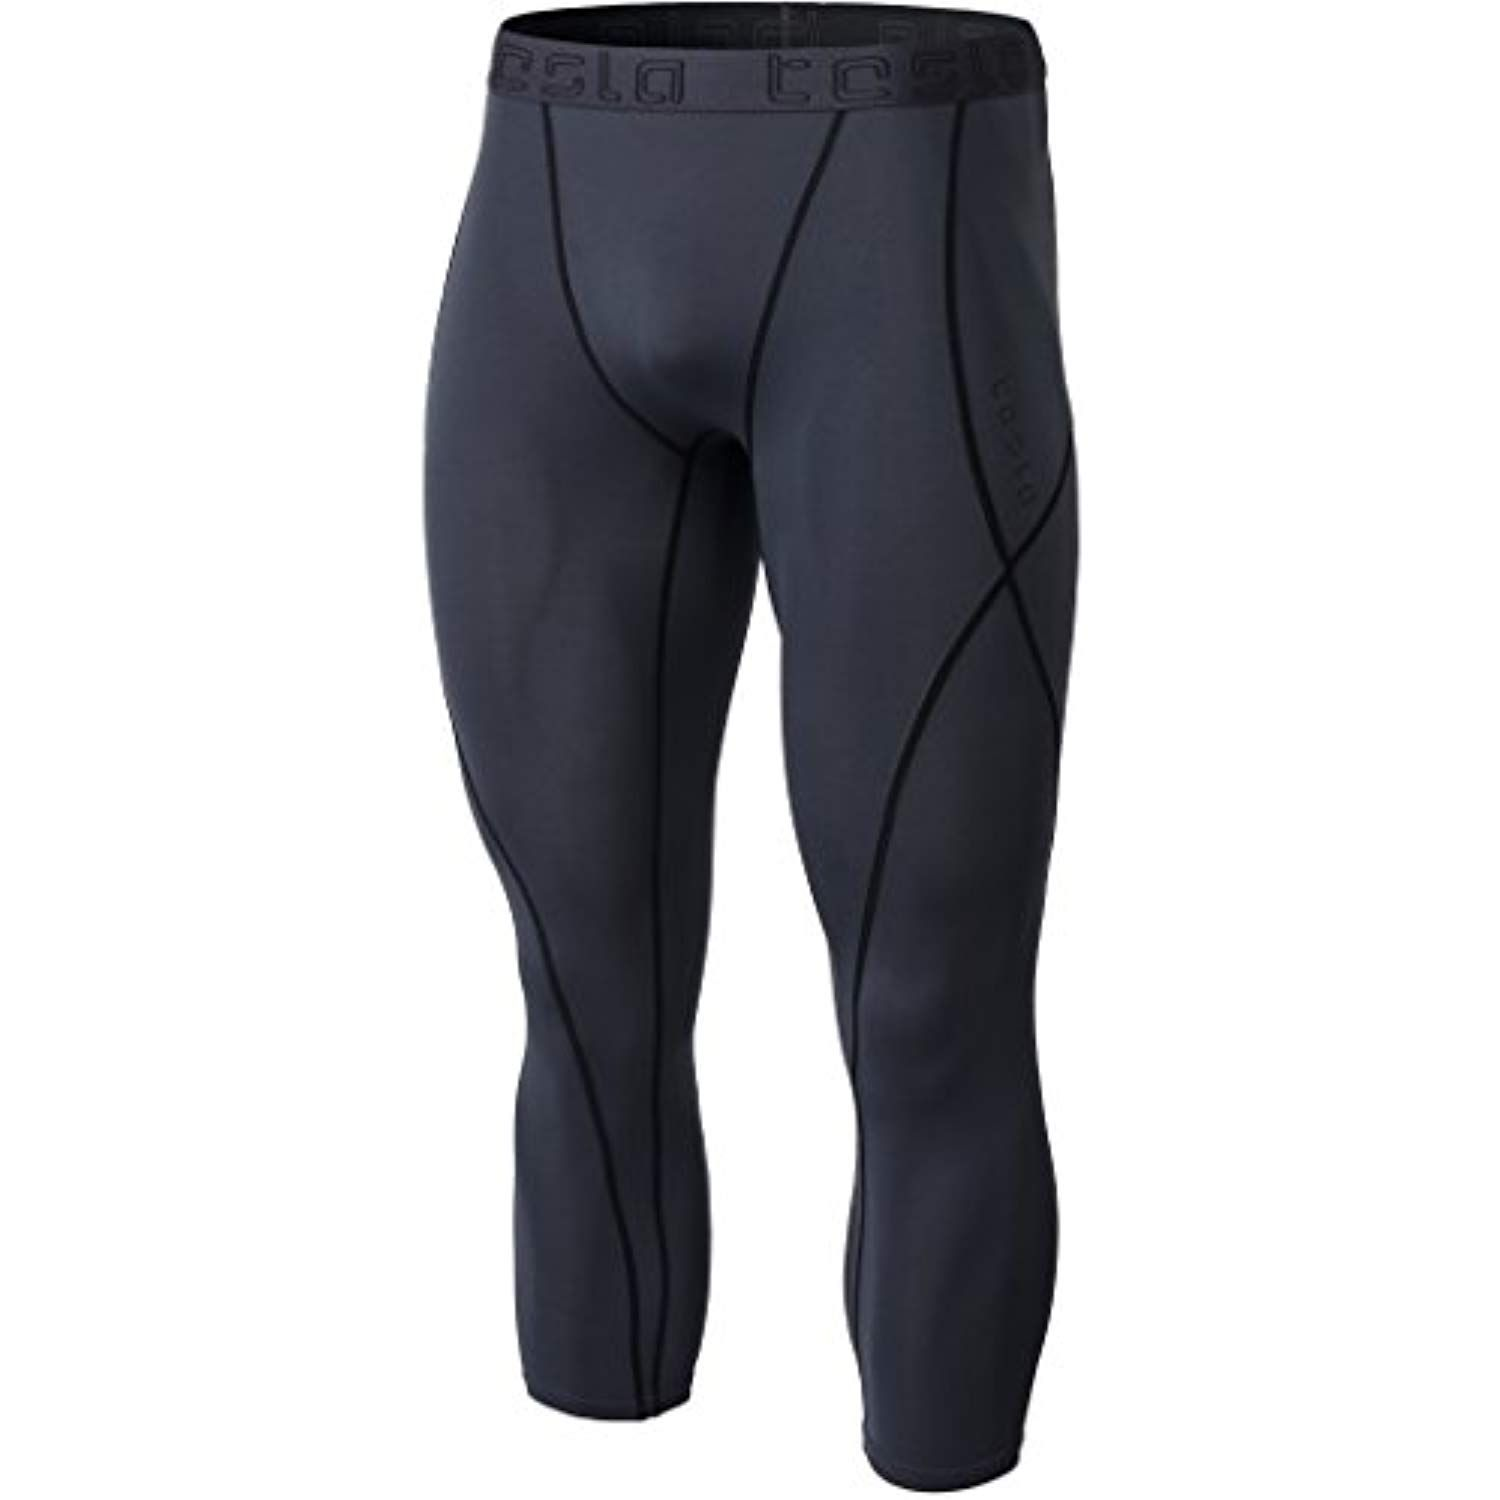 TSLA Mens Pack of 1, 2, 3 Compression Pants Workout Running Baselayer Active Cool Dry Leggings Tights